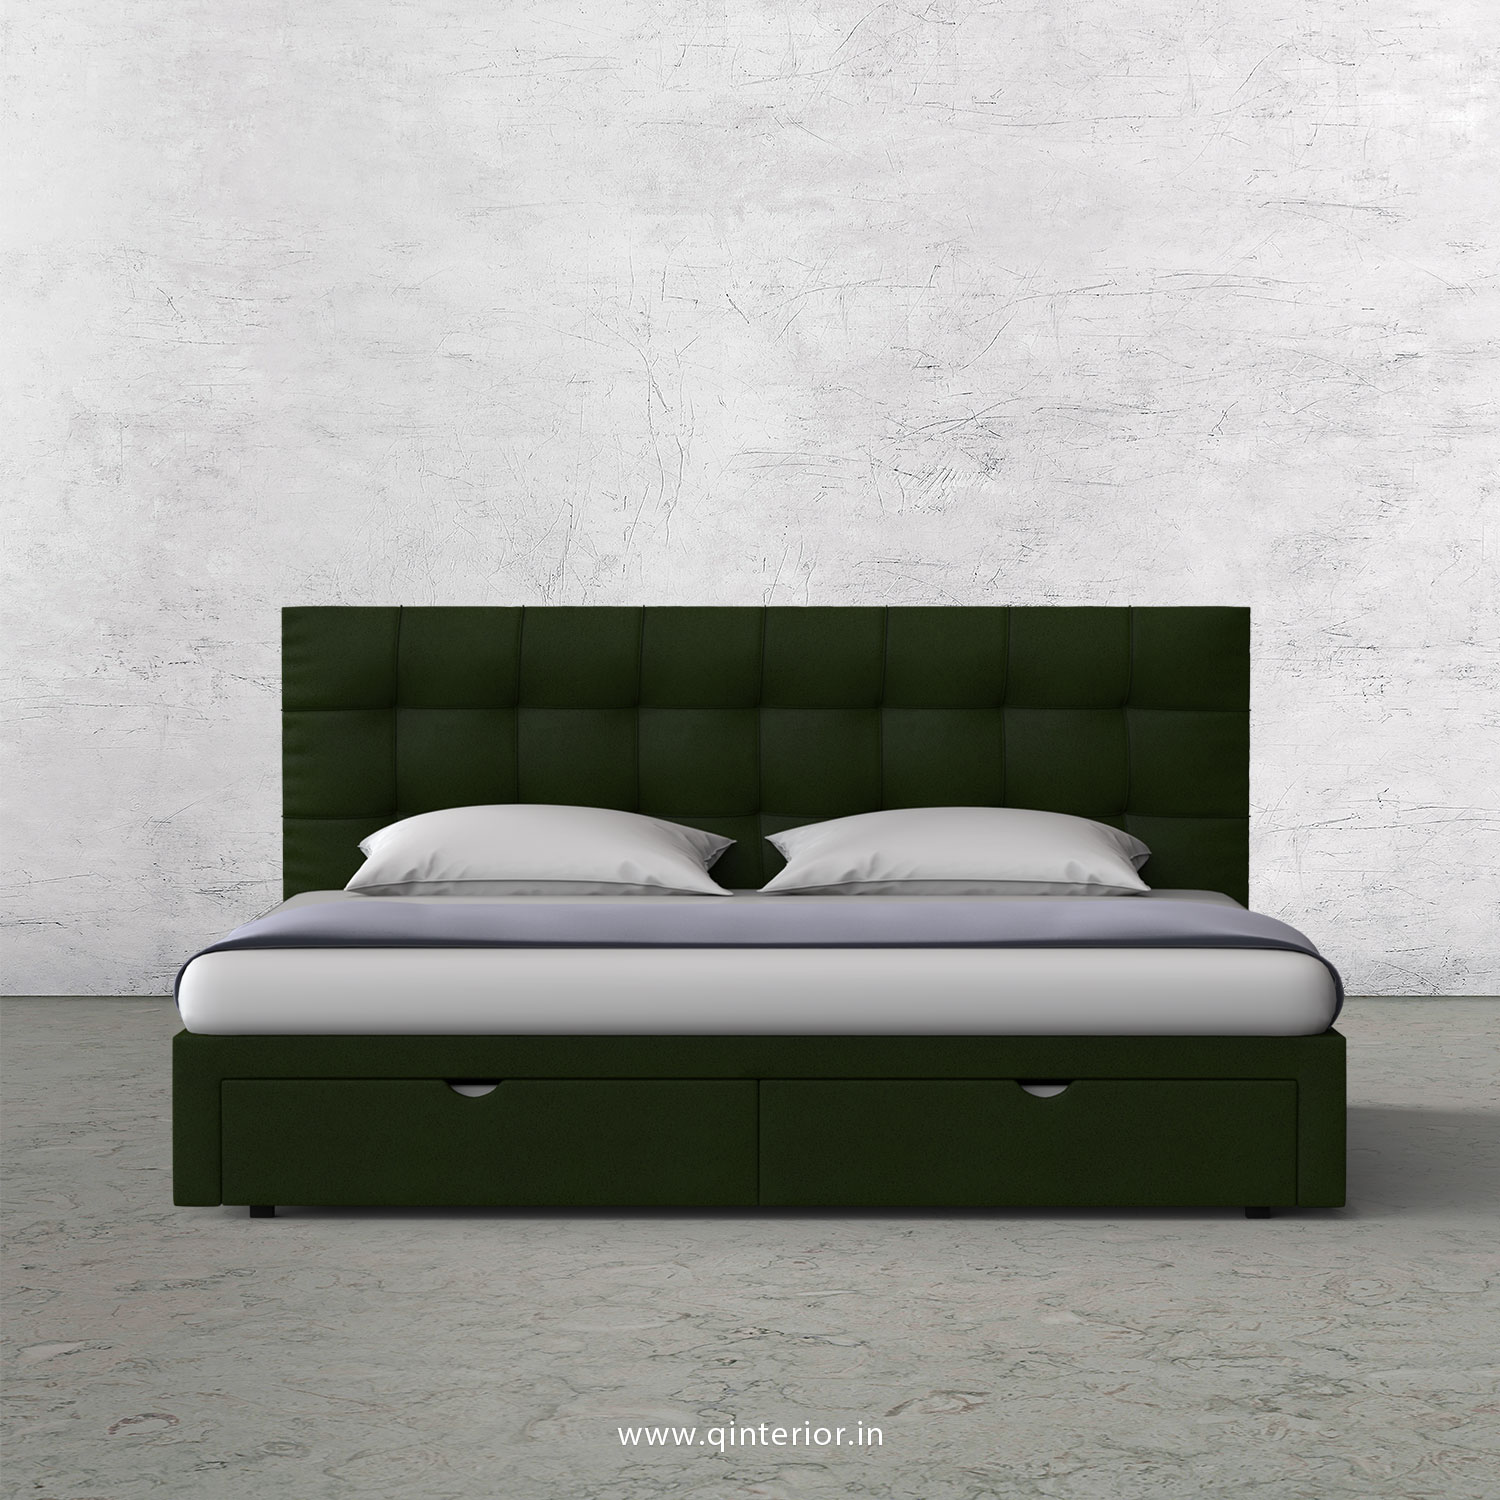 Lyra King Size Storage Bed In Fab Leather Fabric Kbd001 Fl04 In Olive Green Color By Q Interior